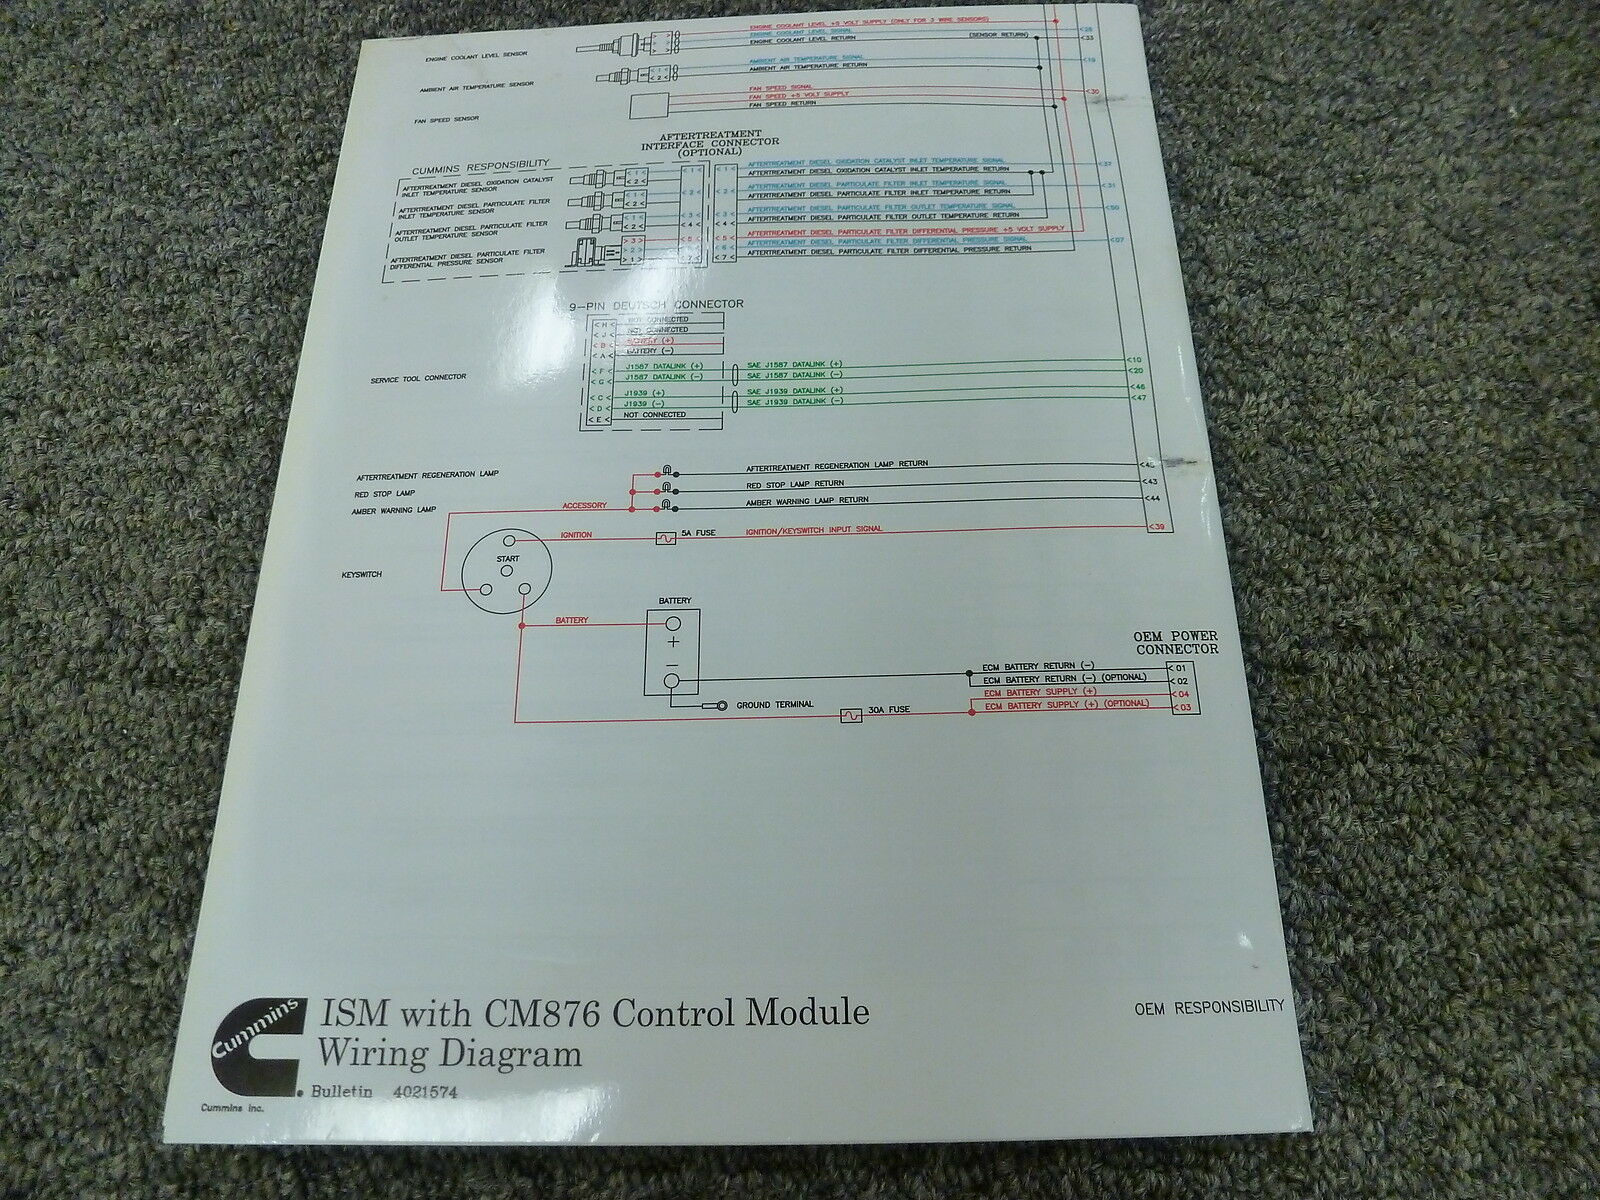 hight resolution of ism fuse diagram wiring diagram data todayism fuse diagram wiring diagram cummins ism engine with cm876